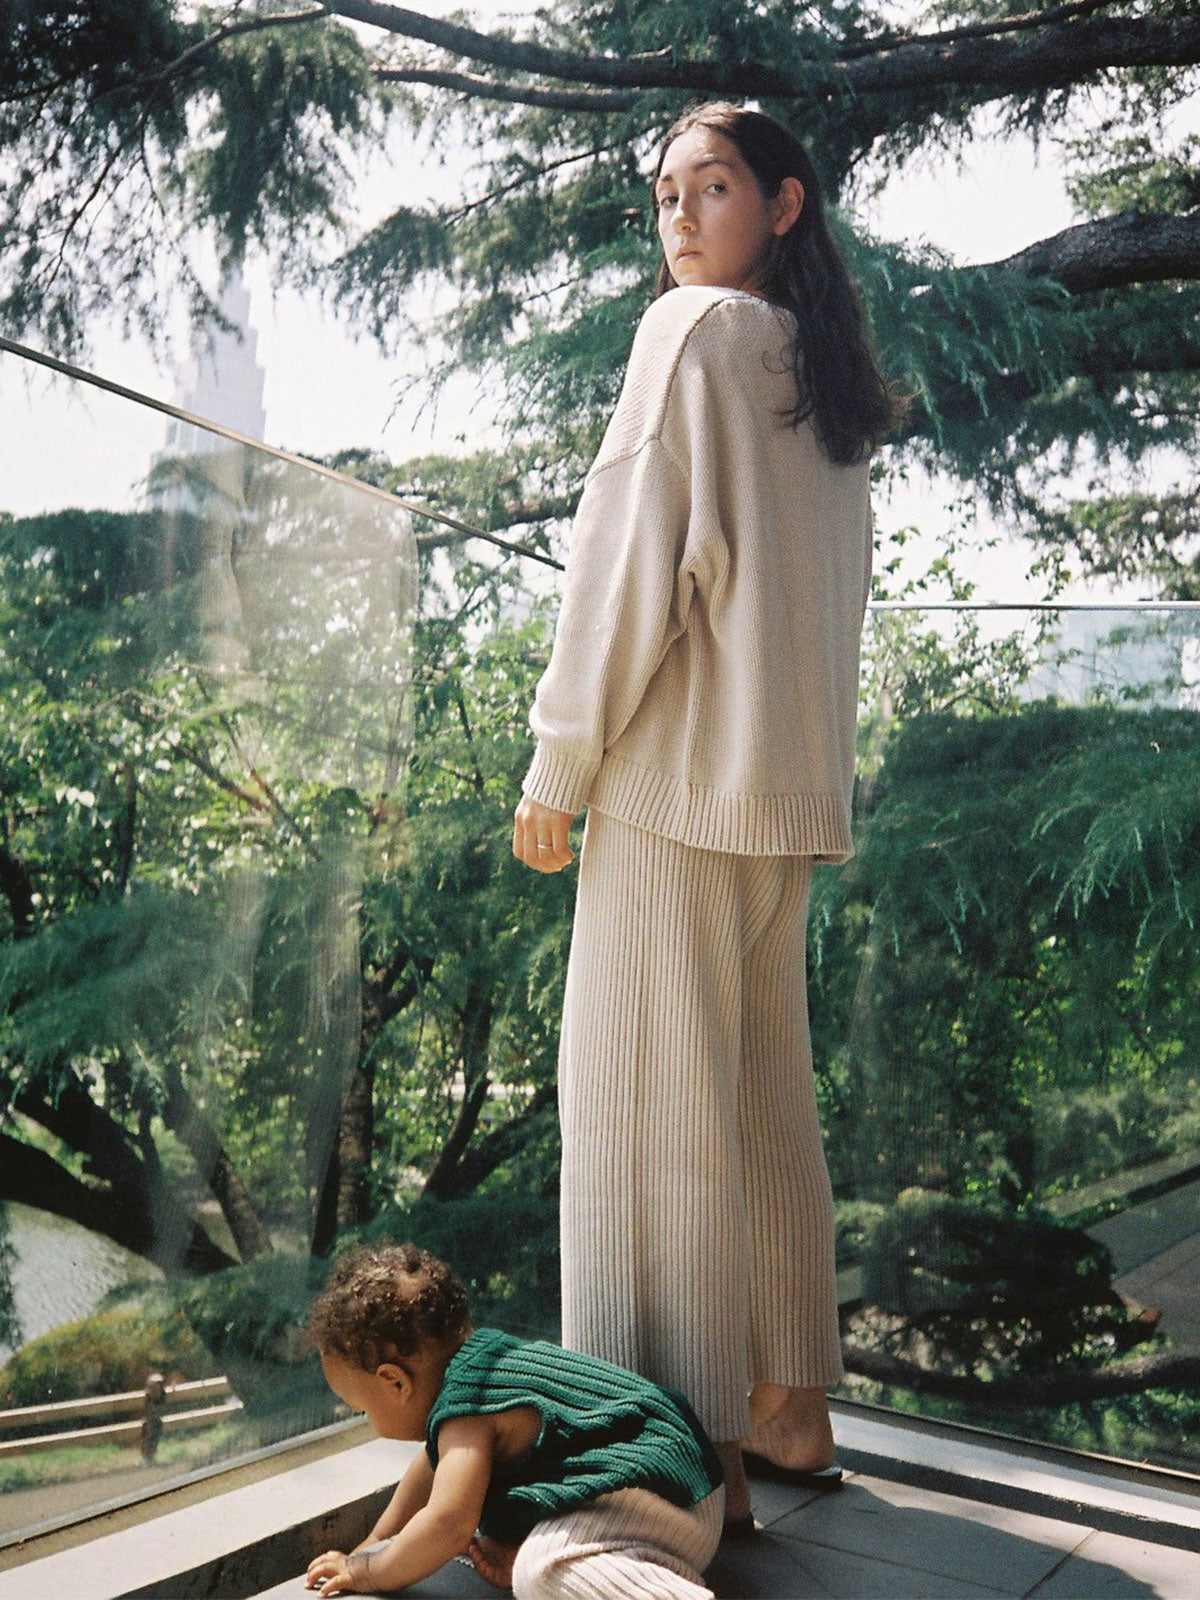 Knitwear for mother and child, organic cotton, ethical, sustainable. New Zealand